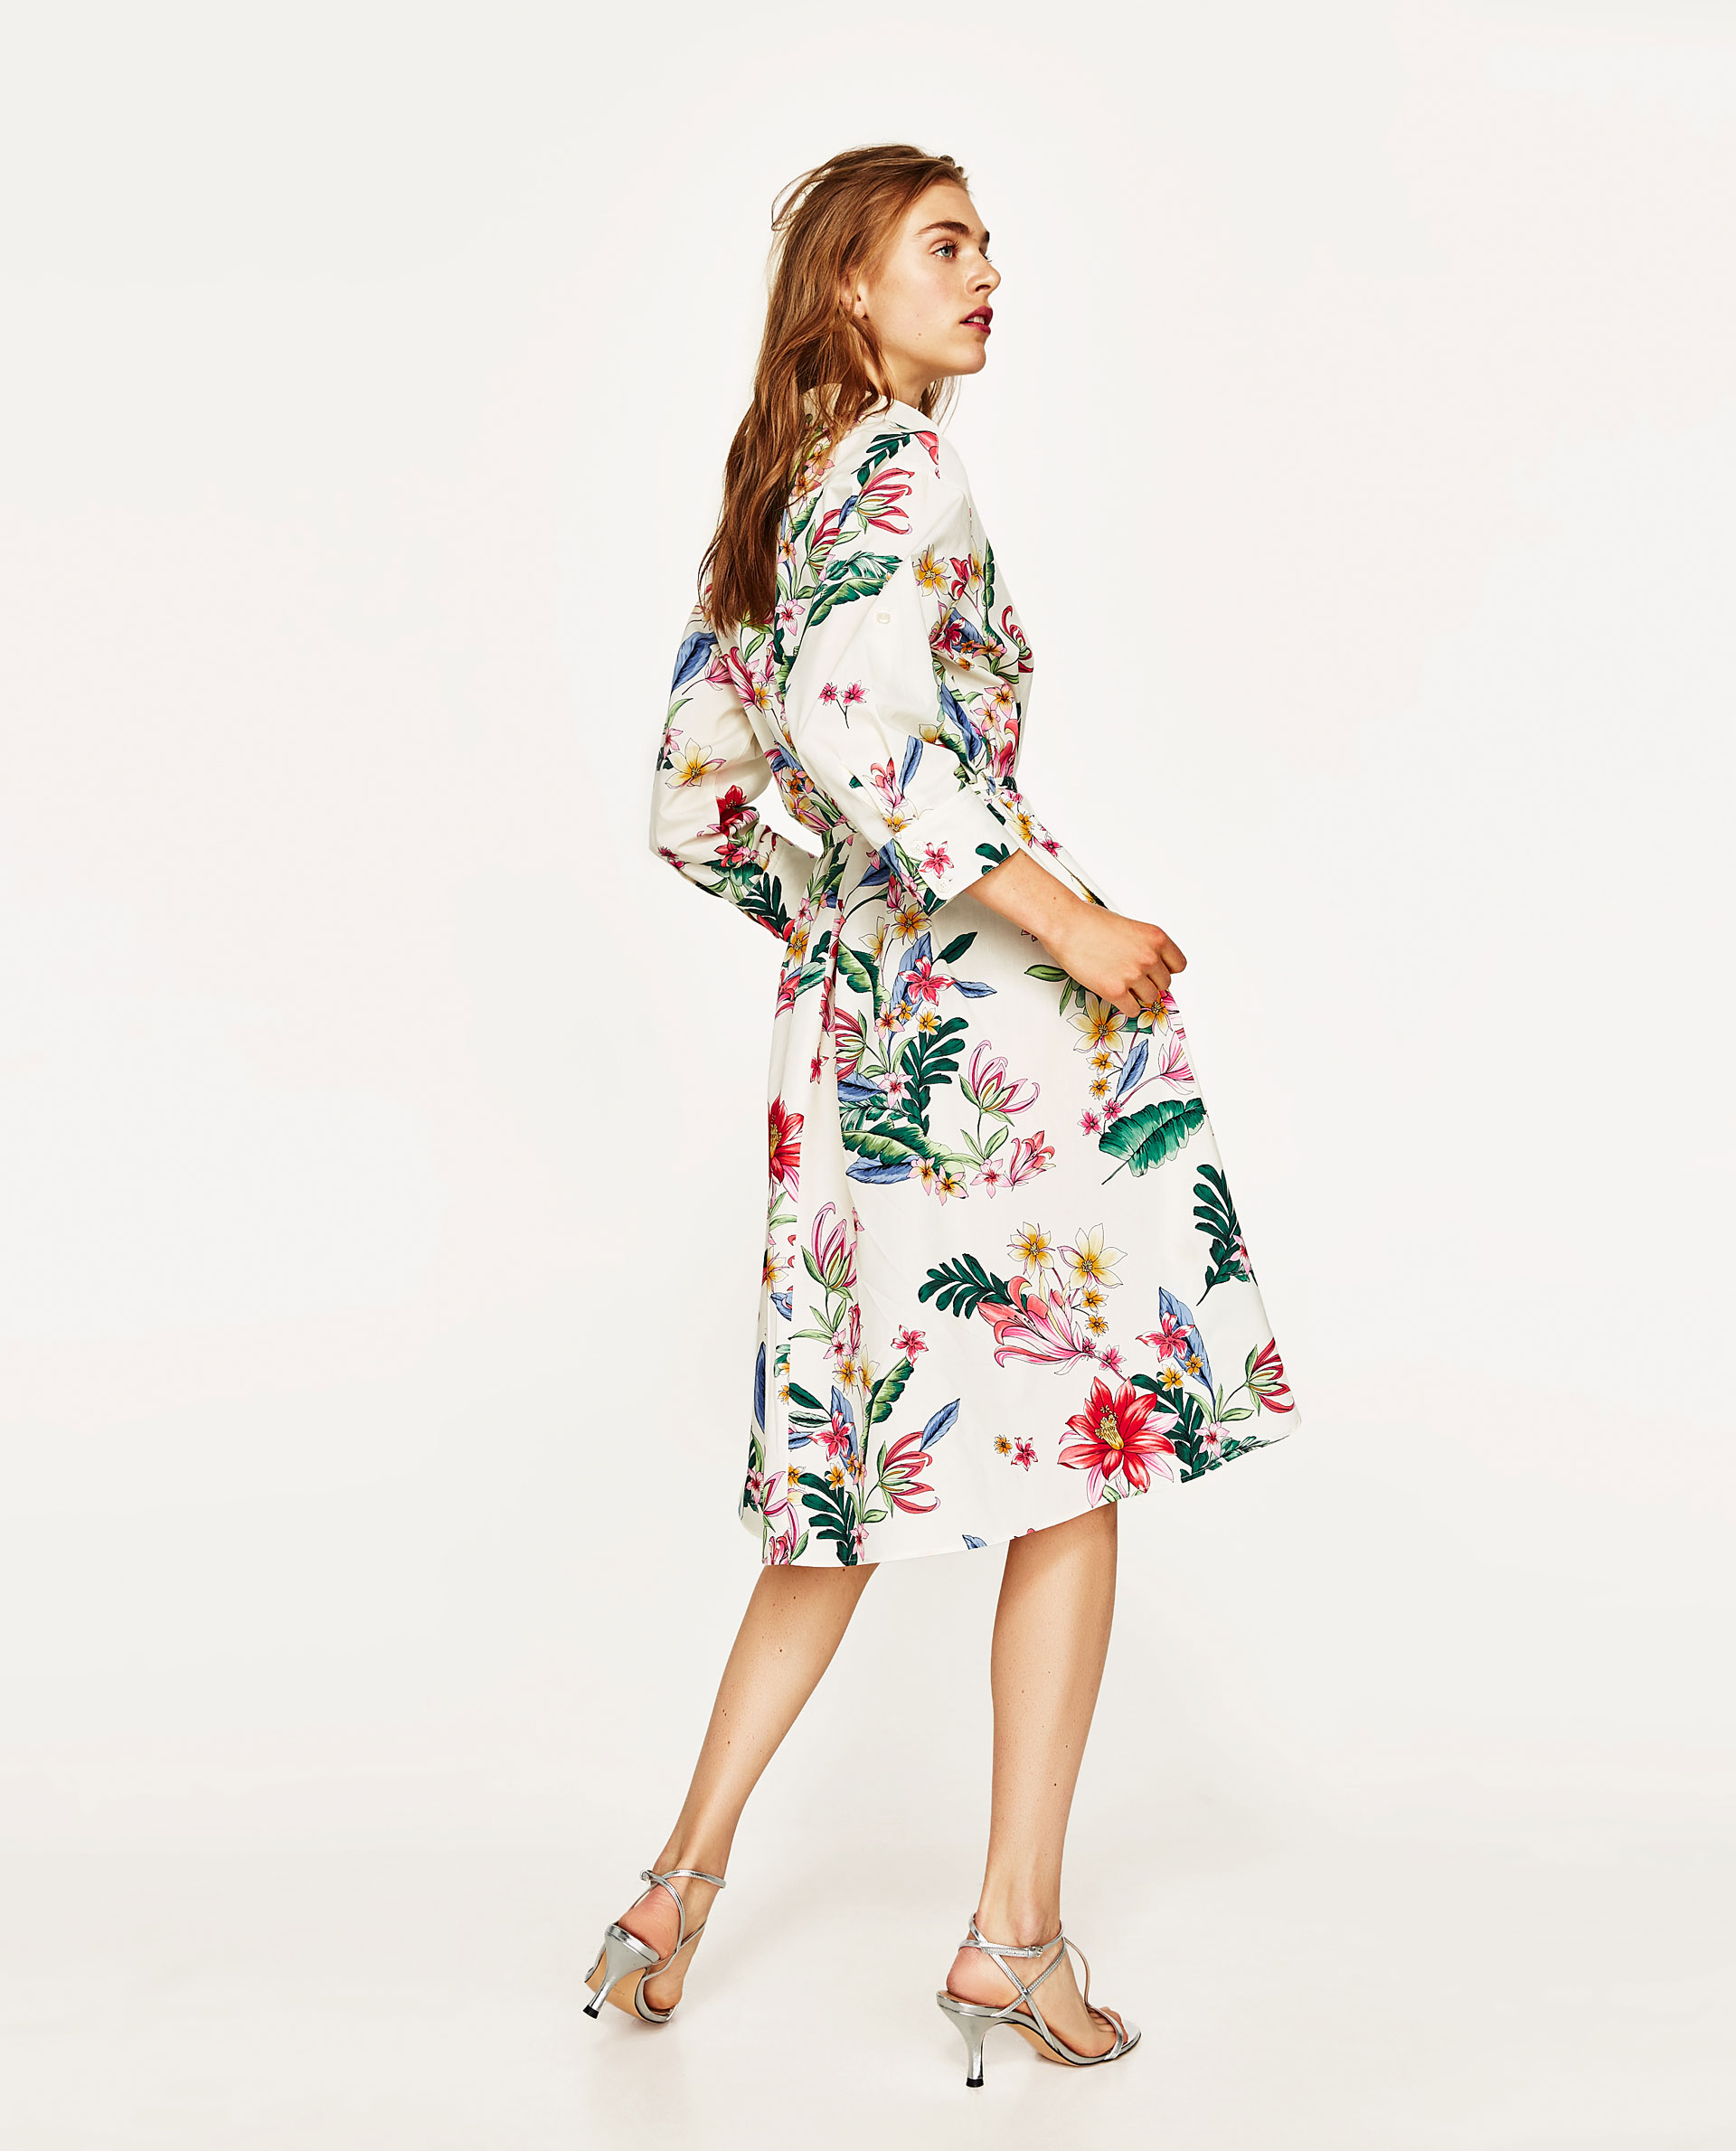 d470f976a57 Shirt Dress With Floral Embroidery Zara